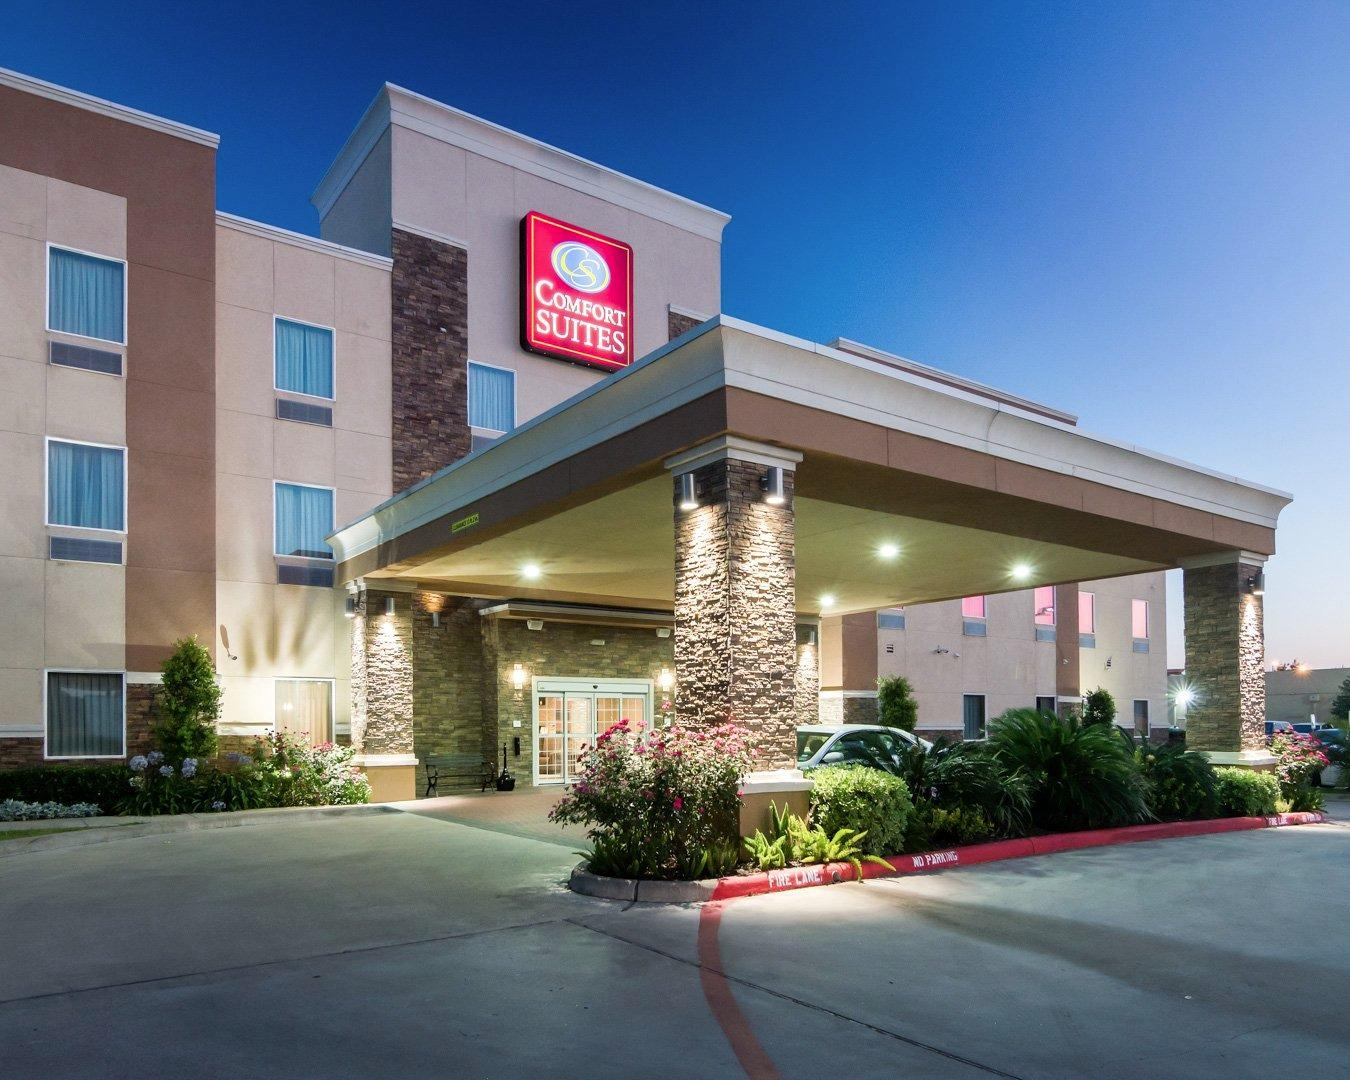 Hotel in TX Katy 77494 Comfort Suites At Katy Mills 25115 Katy Freeway  (281)574-5900